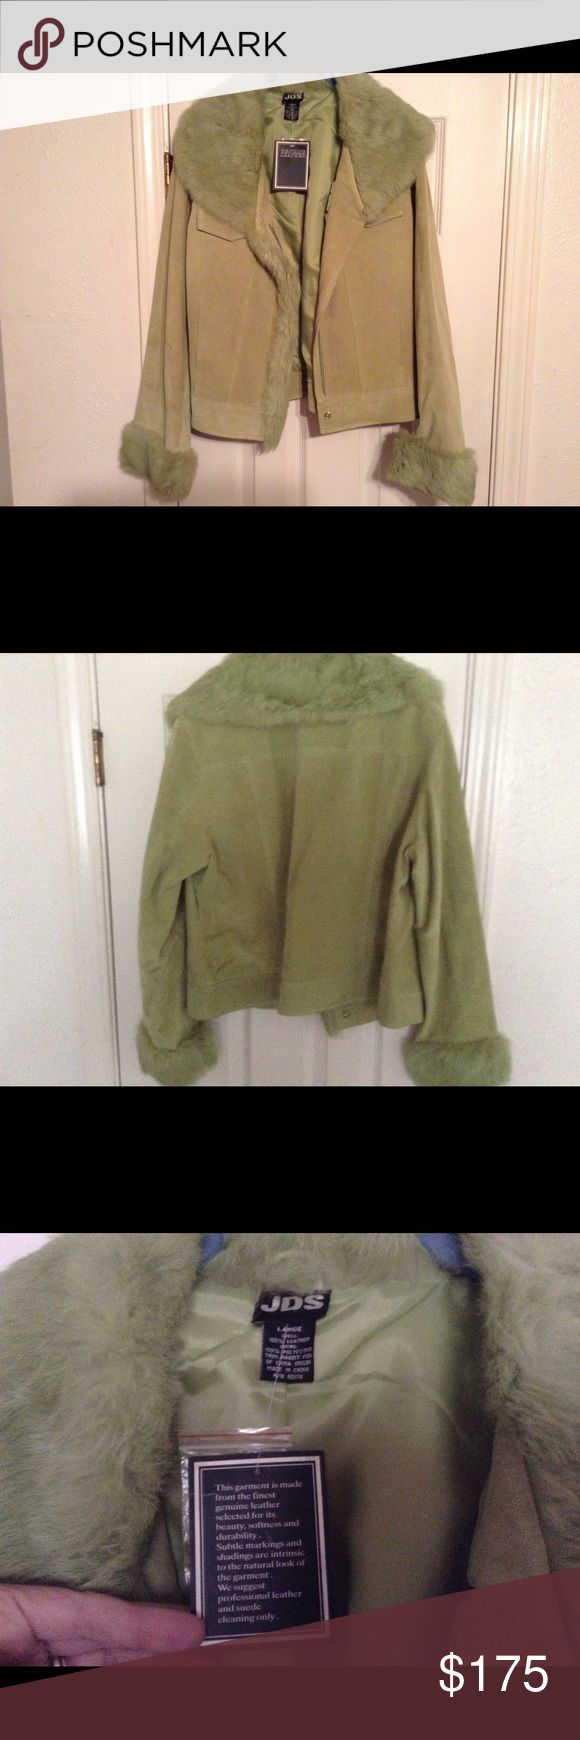 Green Leather Jacket With Fur Trim, NWT , Size L This Is A Gorgeous Green 100% Genuine  Leather and Polyester Lining That's New Never Worn ! In Excellent Undamaged Condition! Beautiful And Will Be Dry Cleaned Before mailing out! Thanks! JDS Jackets & Coats